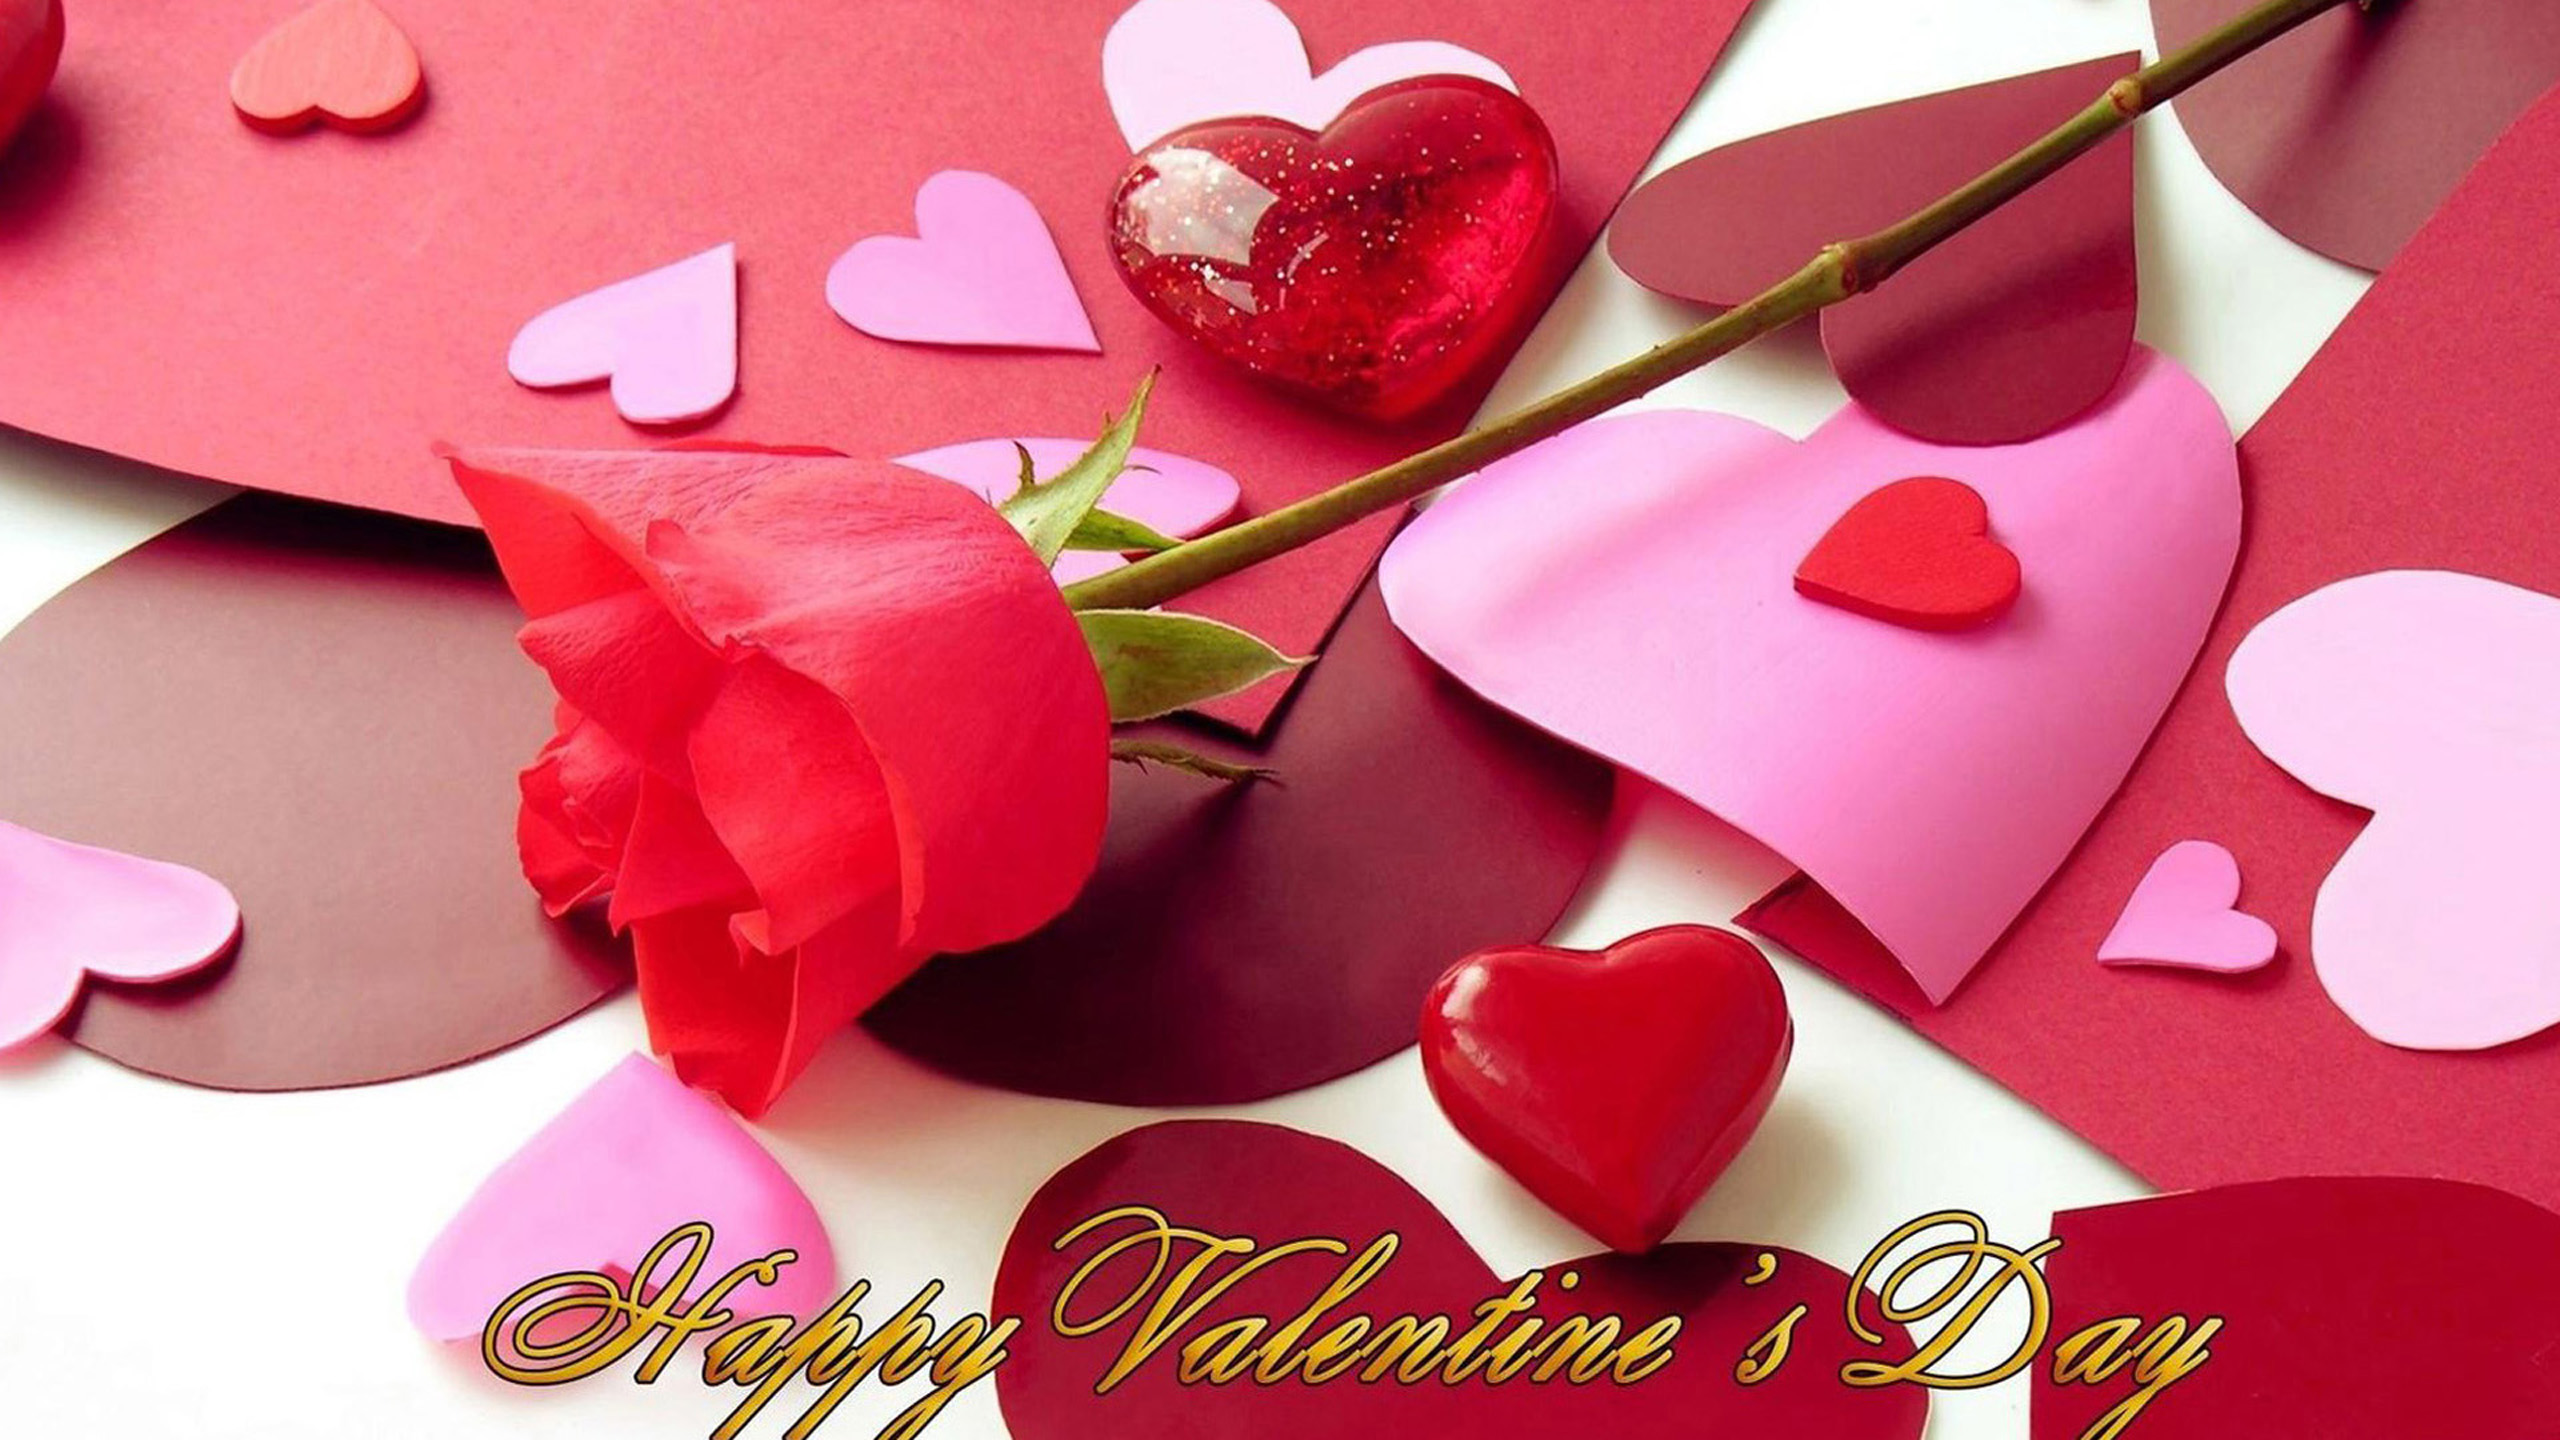 Beautiful Images Of Love Wallpapers 009